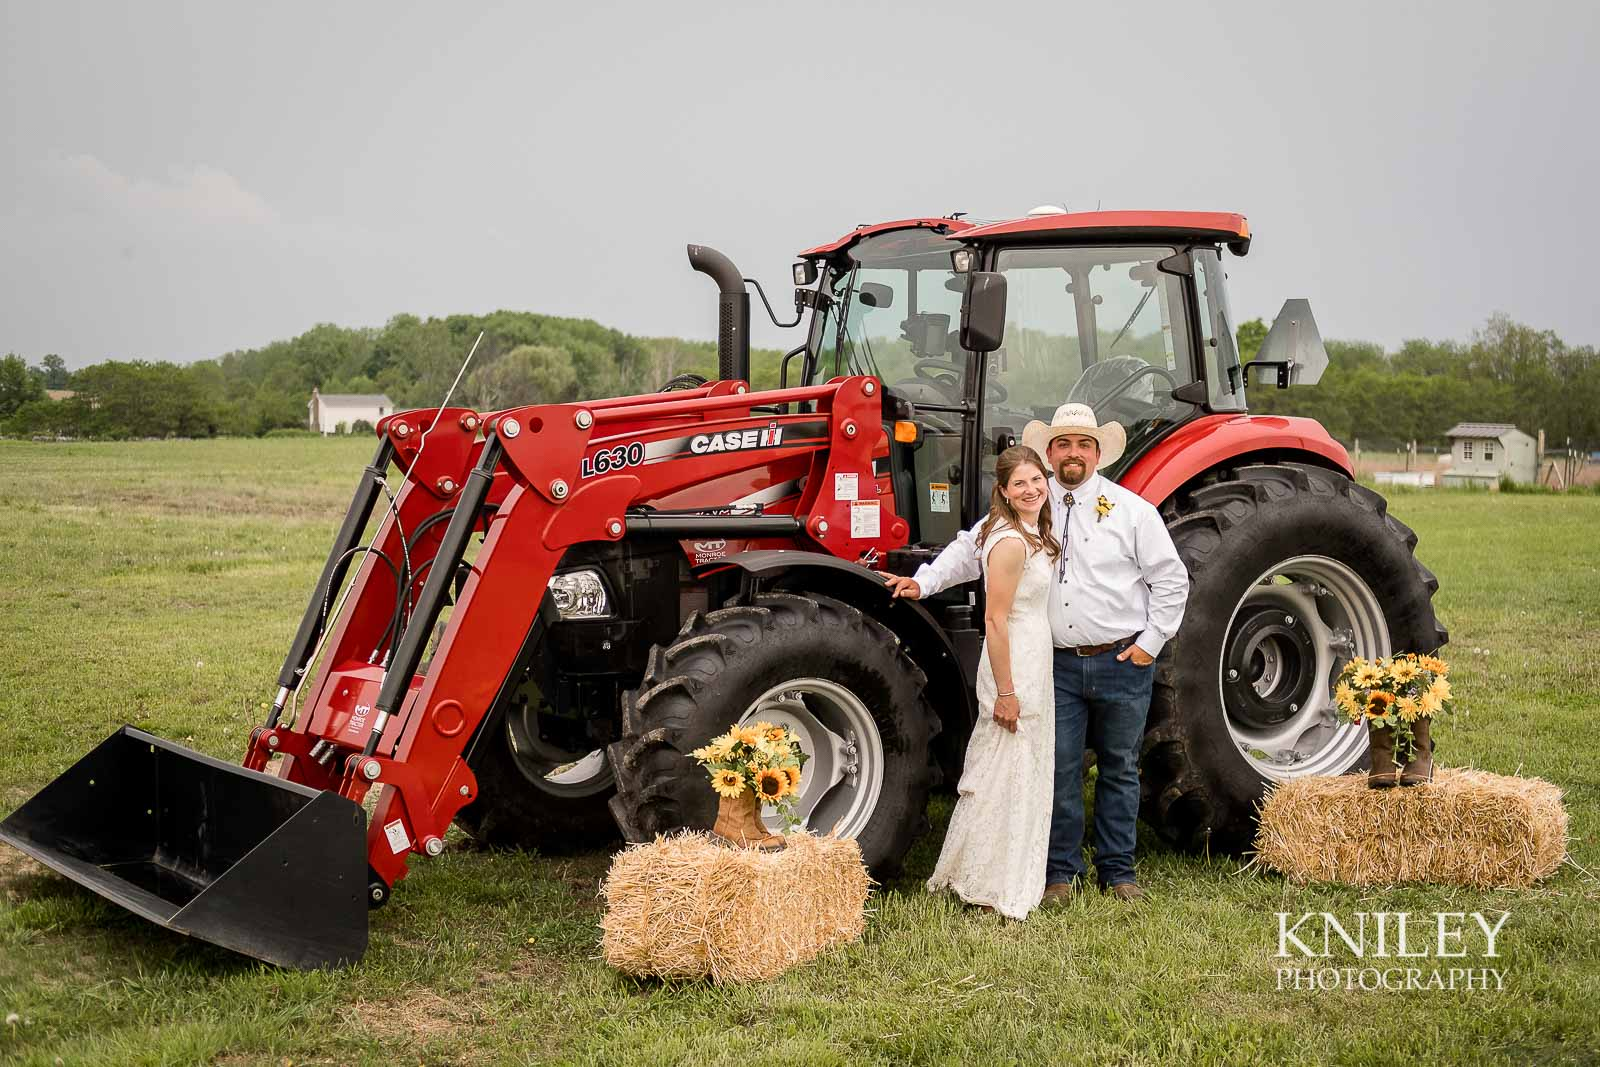 39-Western-New-York-farm-wedding-Kniley-Photography.jpg